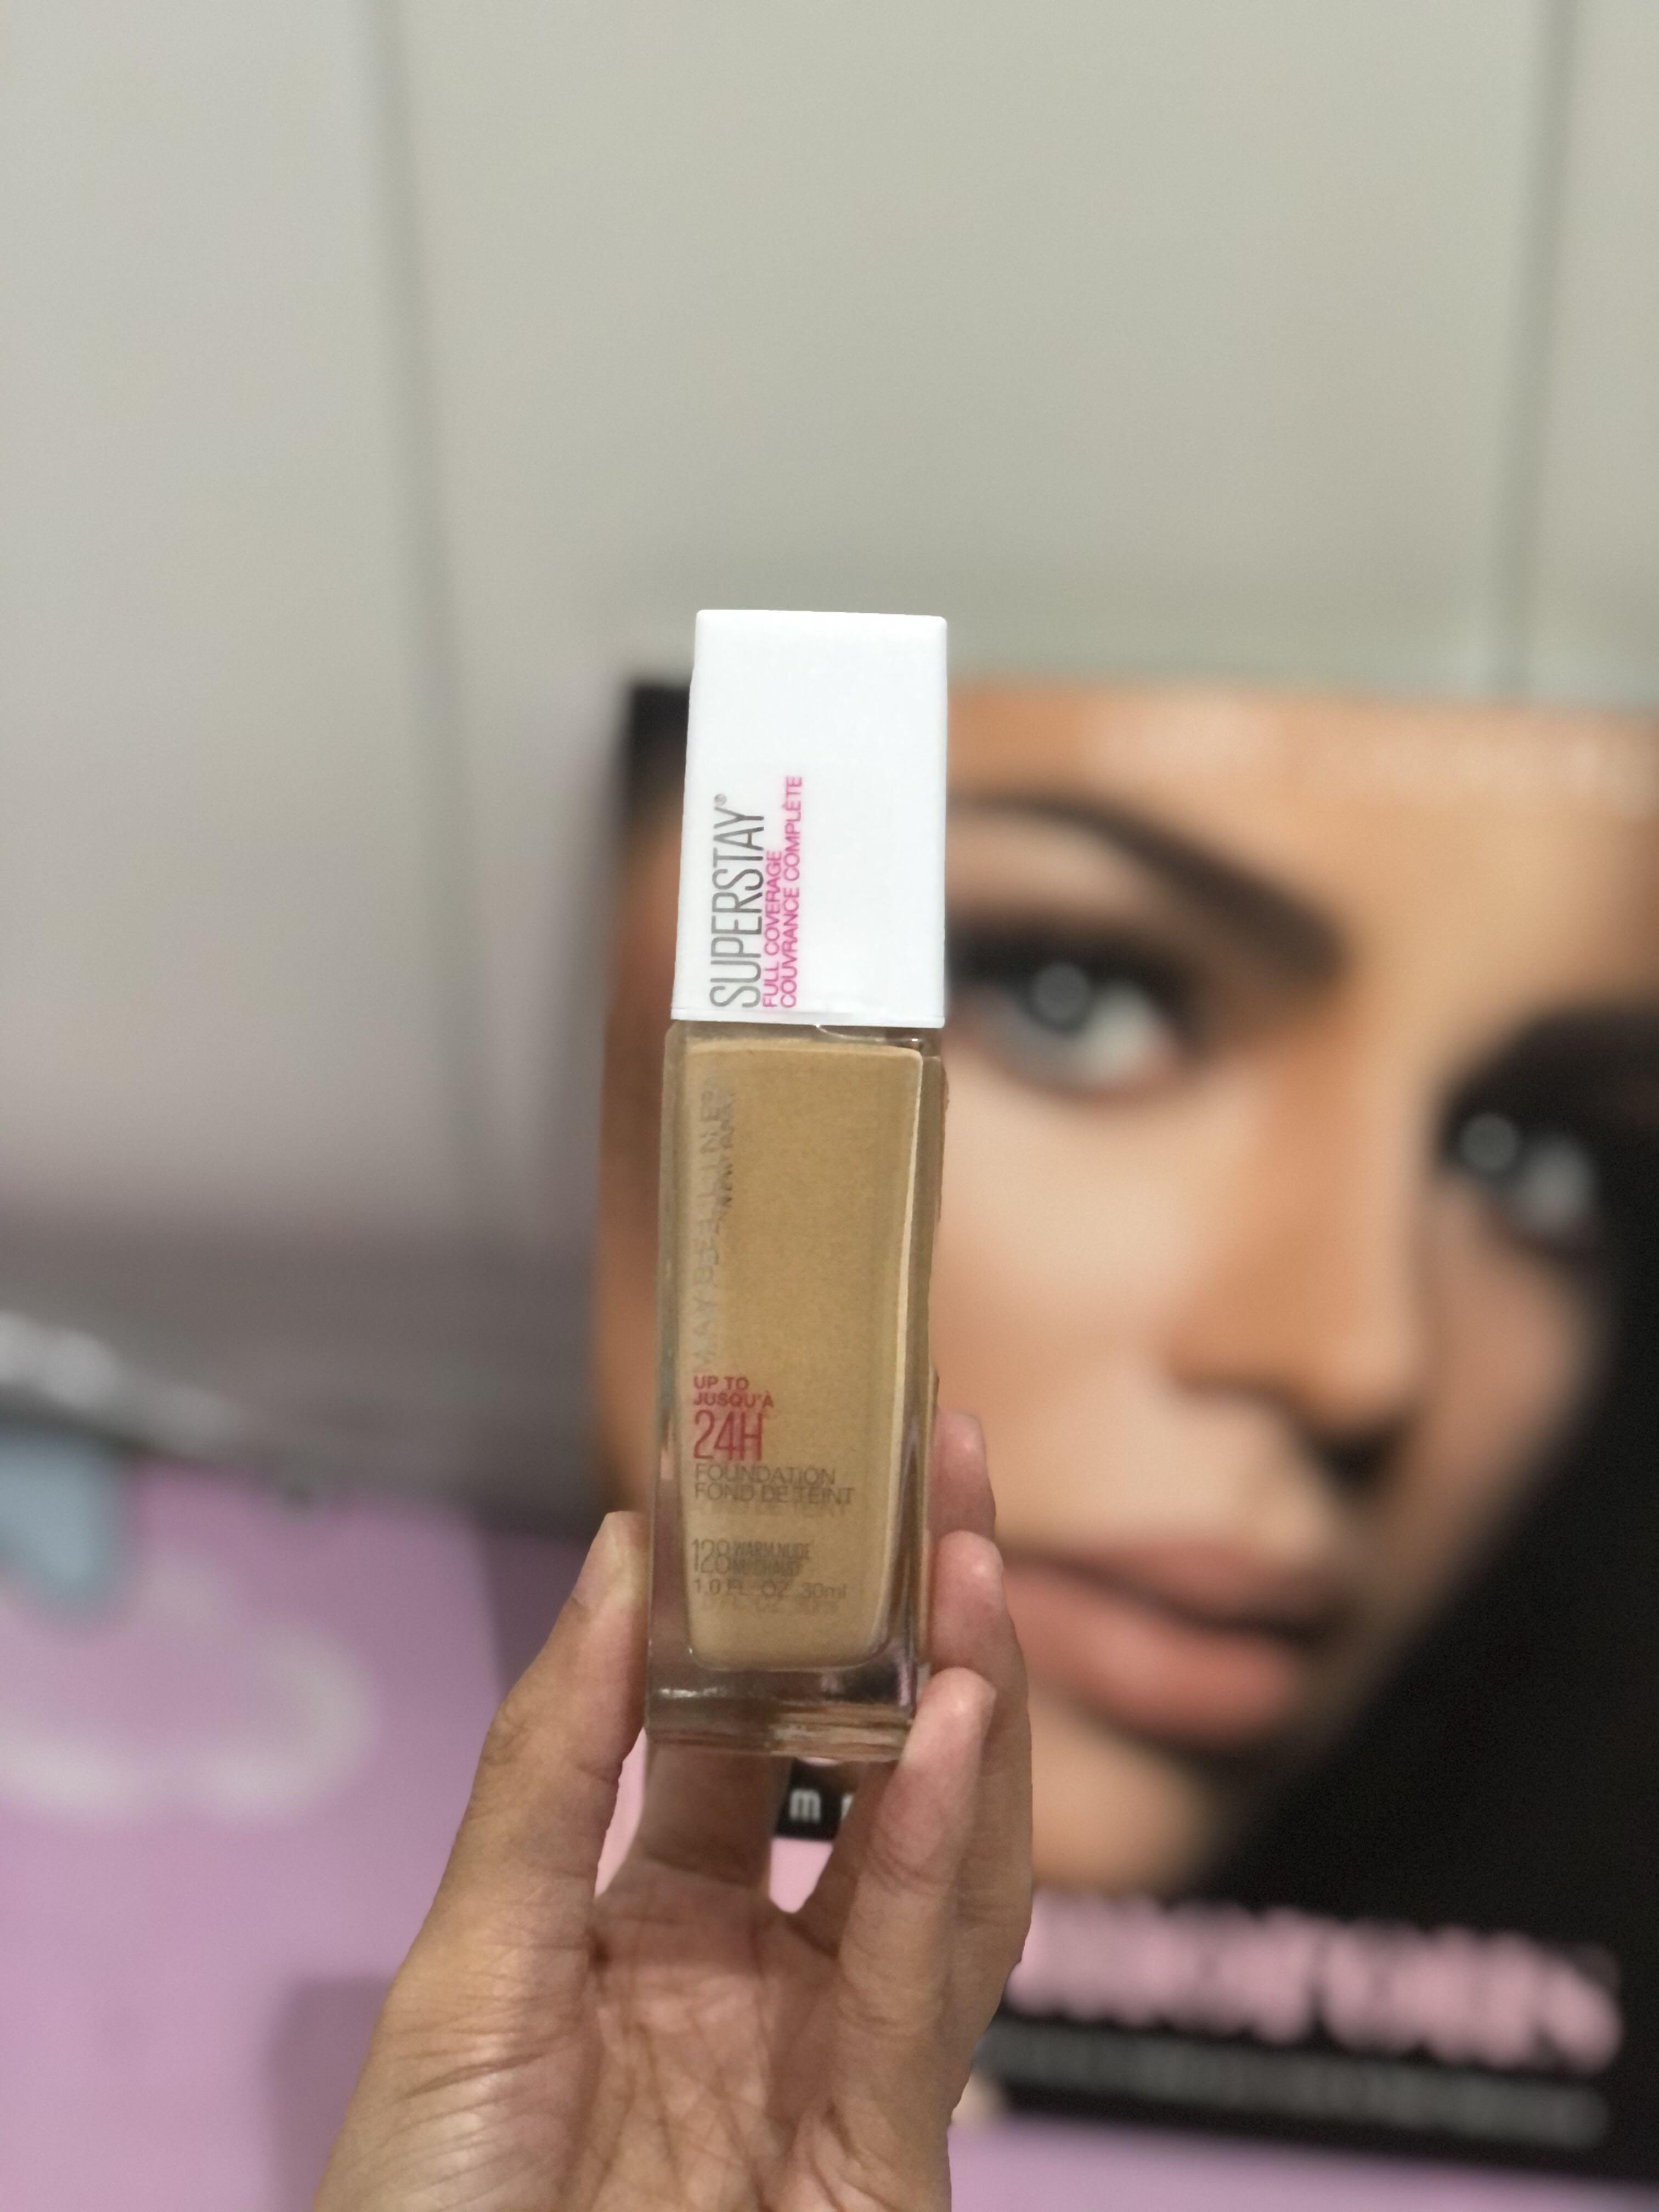 Maybelline Superstay Foundation 24H (128 Warm Nude)